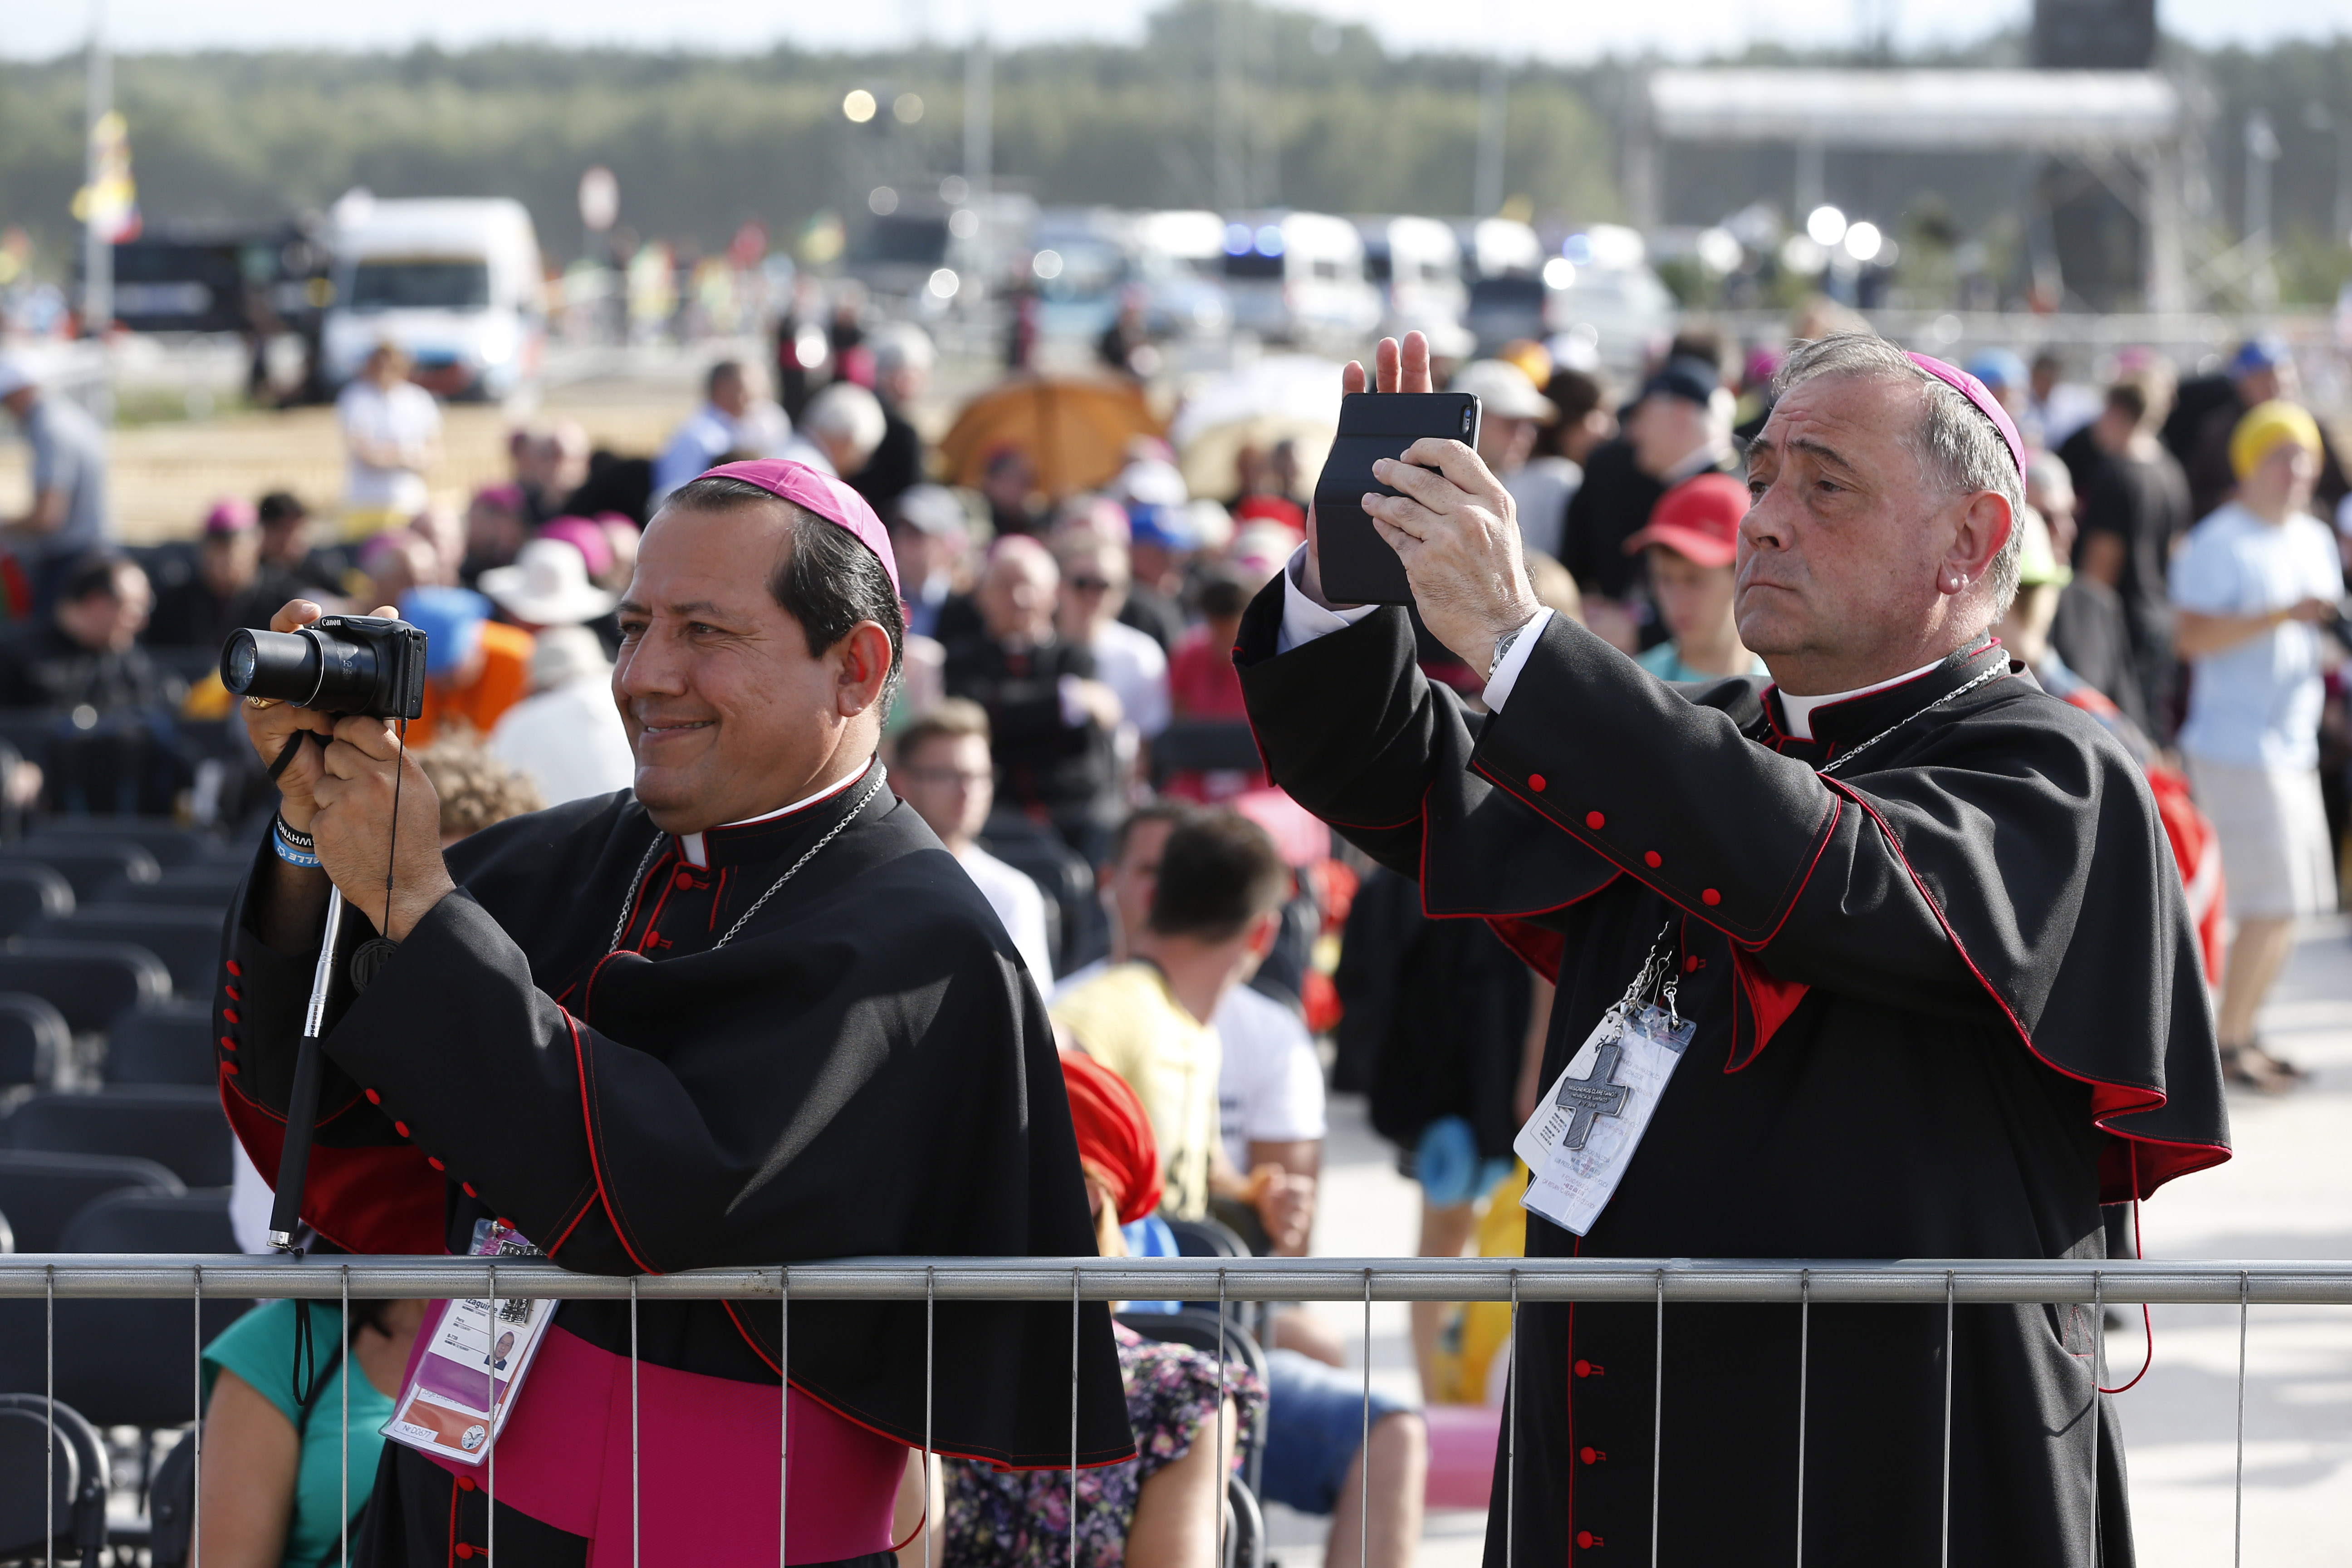 Bishops awaits the Pope's arrival